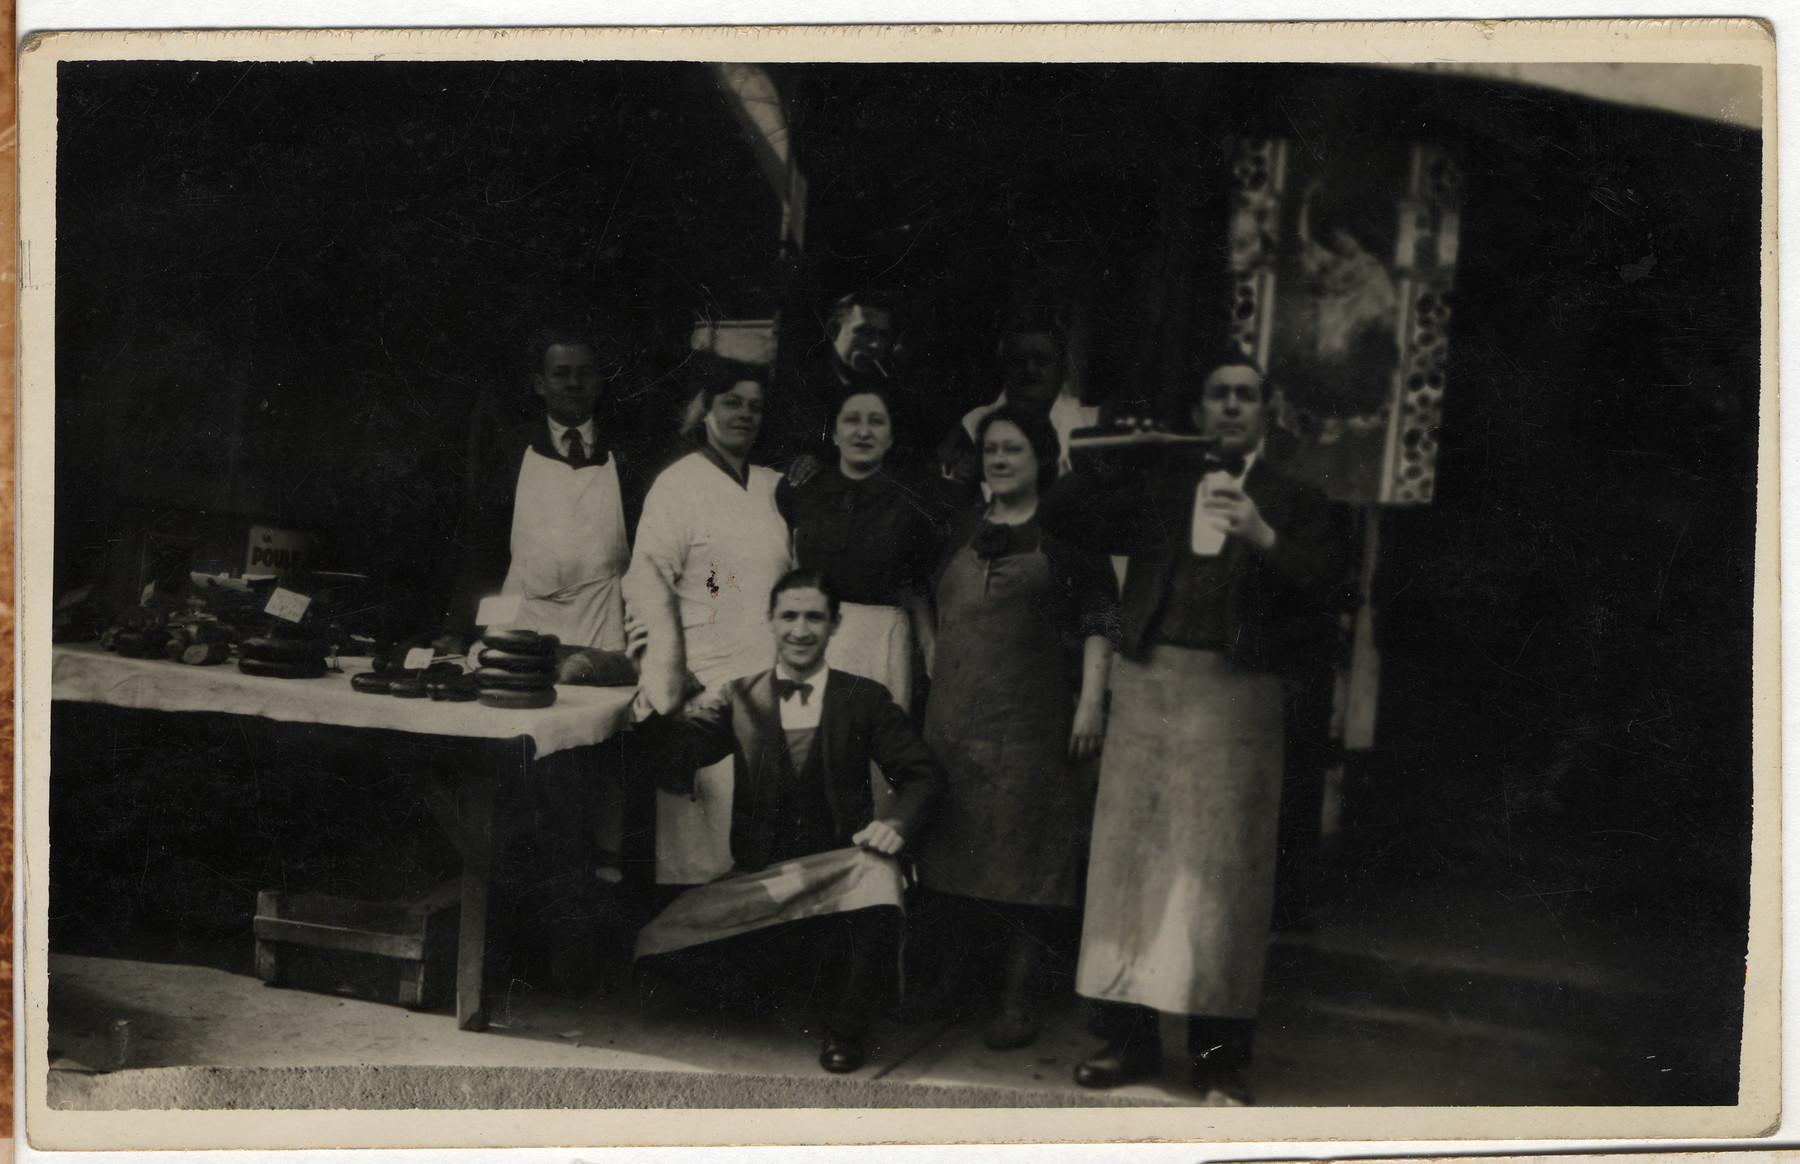 The staff of Albert Abramowitch's cafe poses next to a display of food outside the cafe.  The second woman on the right is his wife, Henriette.  Albert Abramowitch was the older brother of Roche Leja Gimelstein.  He switched his name to escape the Russian army and kept his pseudonym throughout his life.